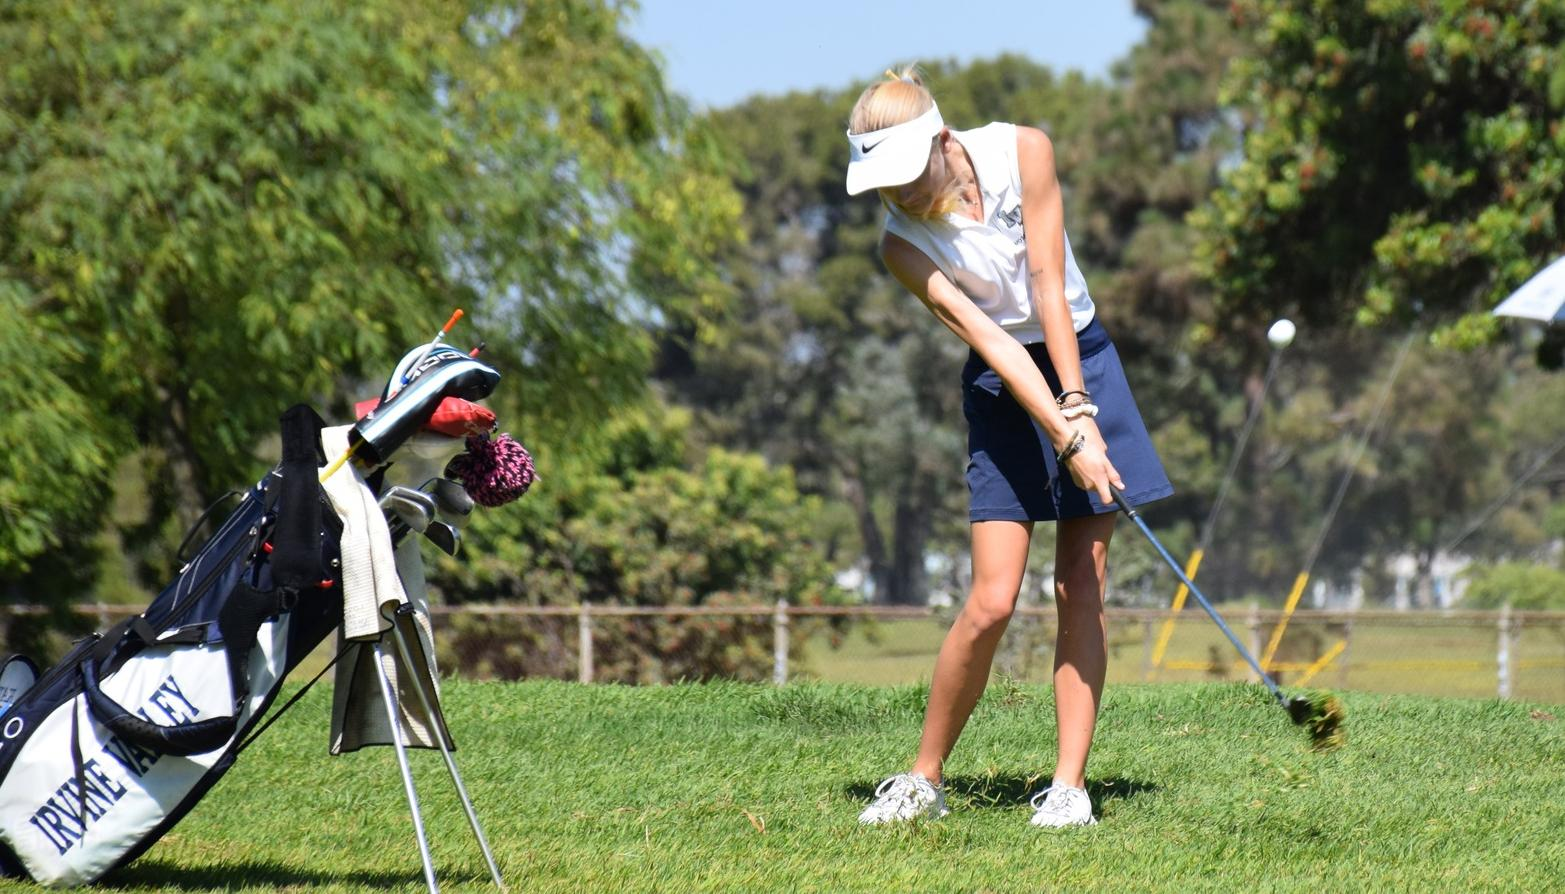 Golfer Katie Stribling earns top three finish at El Prado